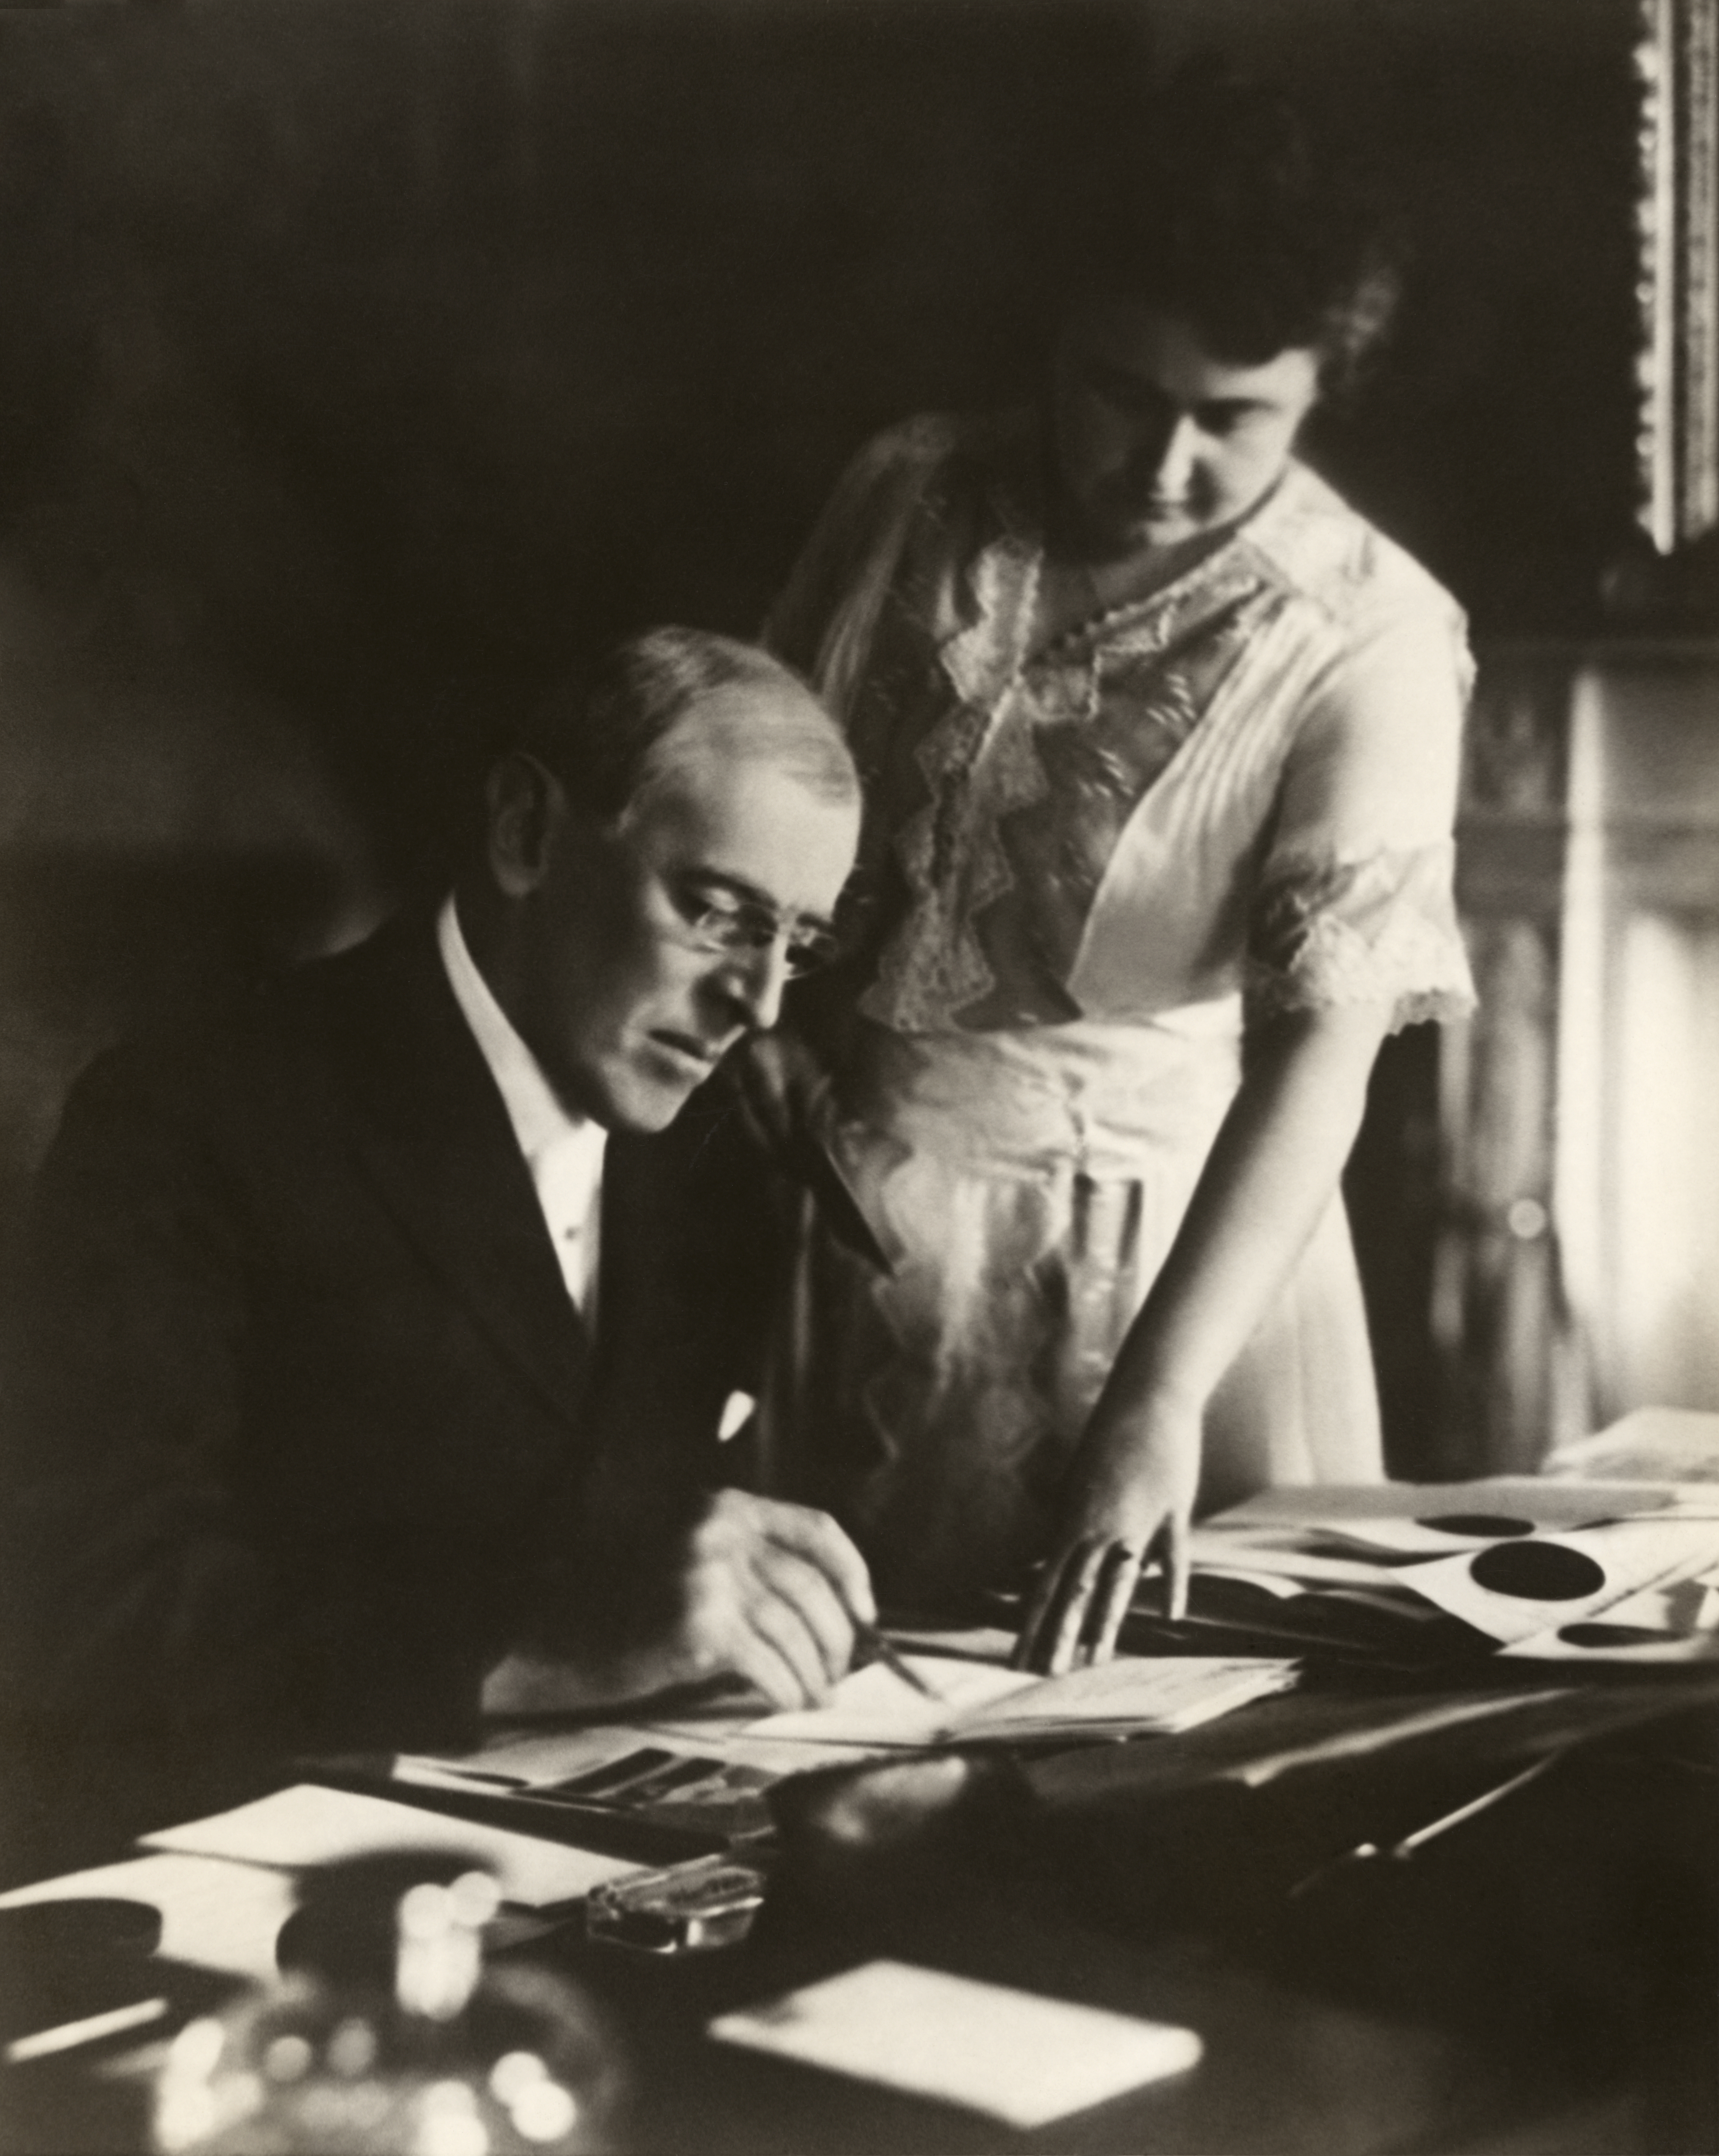 https://upload.wikimedia.org/wikipedia/commons/0/0a/Woodrow_and_Edith_Wilson2.jpg